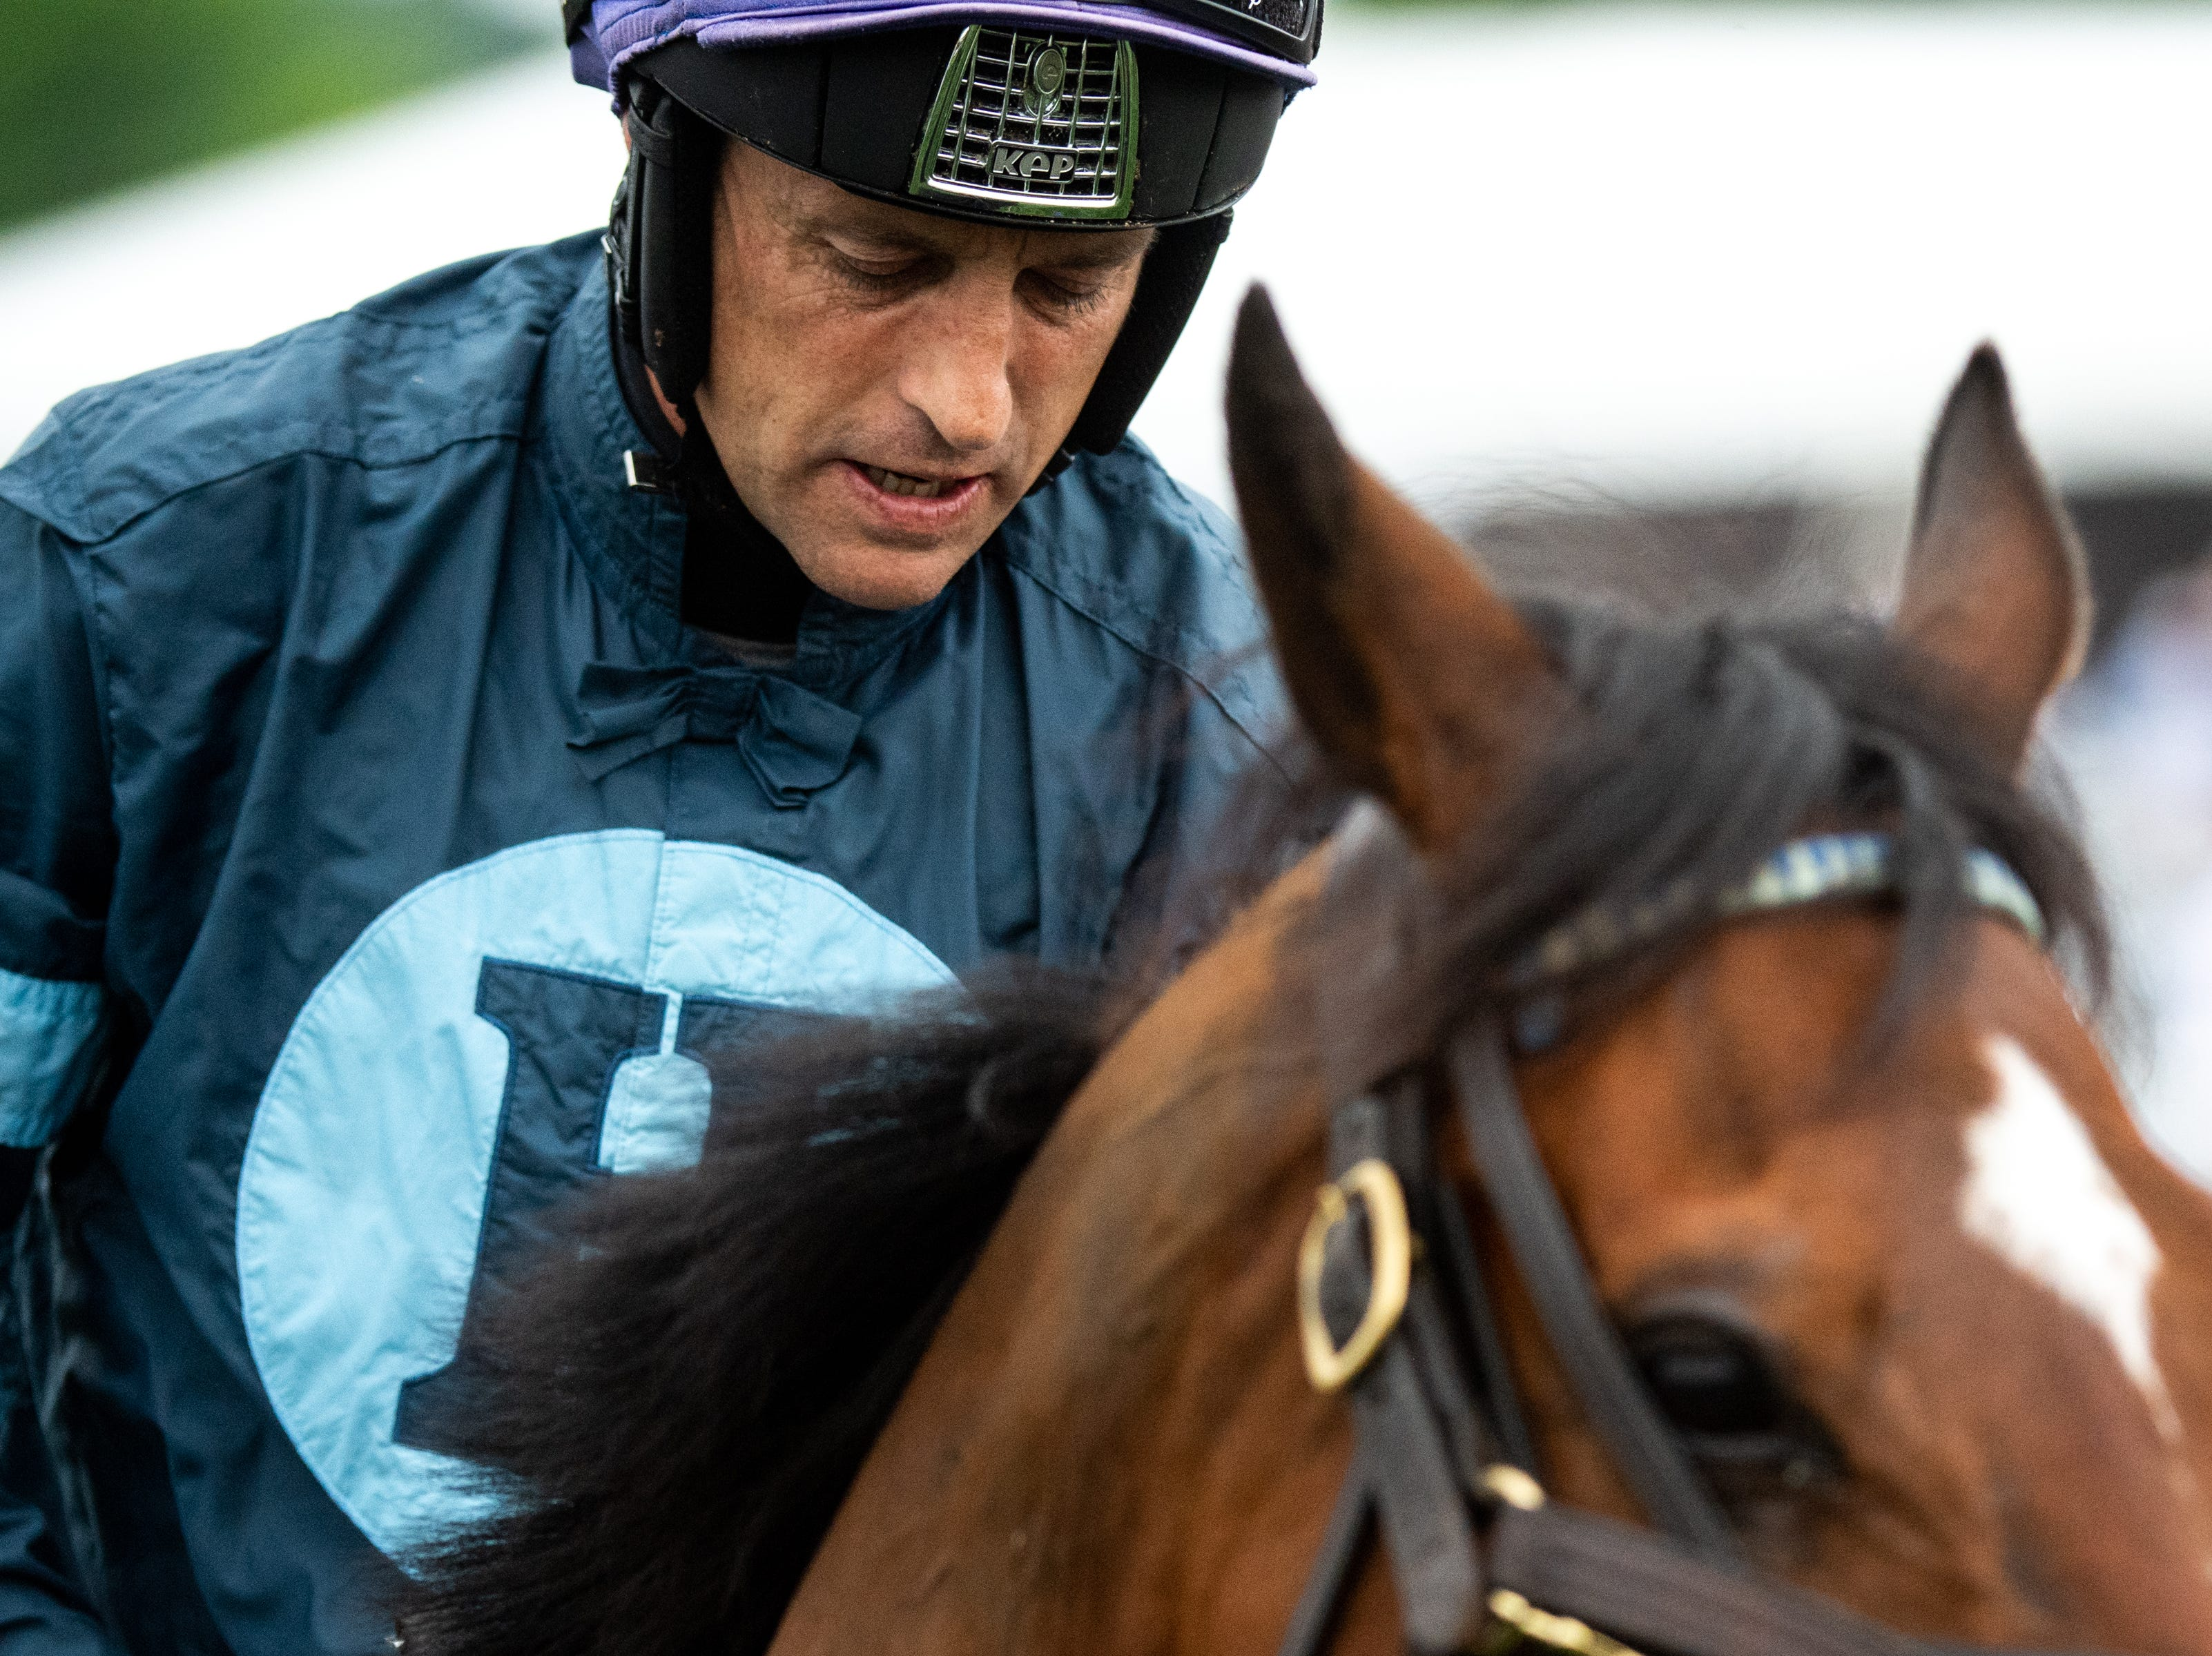 Ross Geraghty prepares to race with Surprising Soul during the final race of the Iroquois Steeplechase at Percy Warner Park Saturday, May 11, 2019, in Nashville, Tenn.